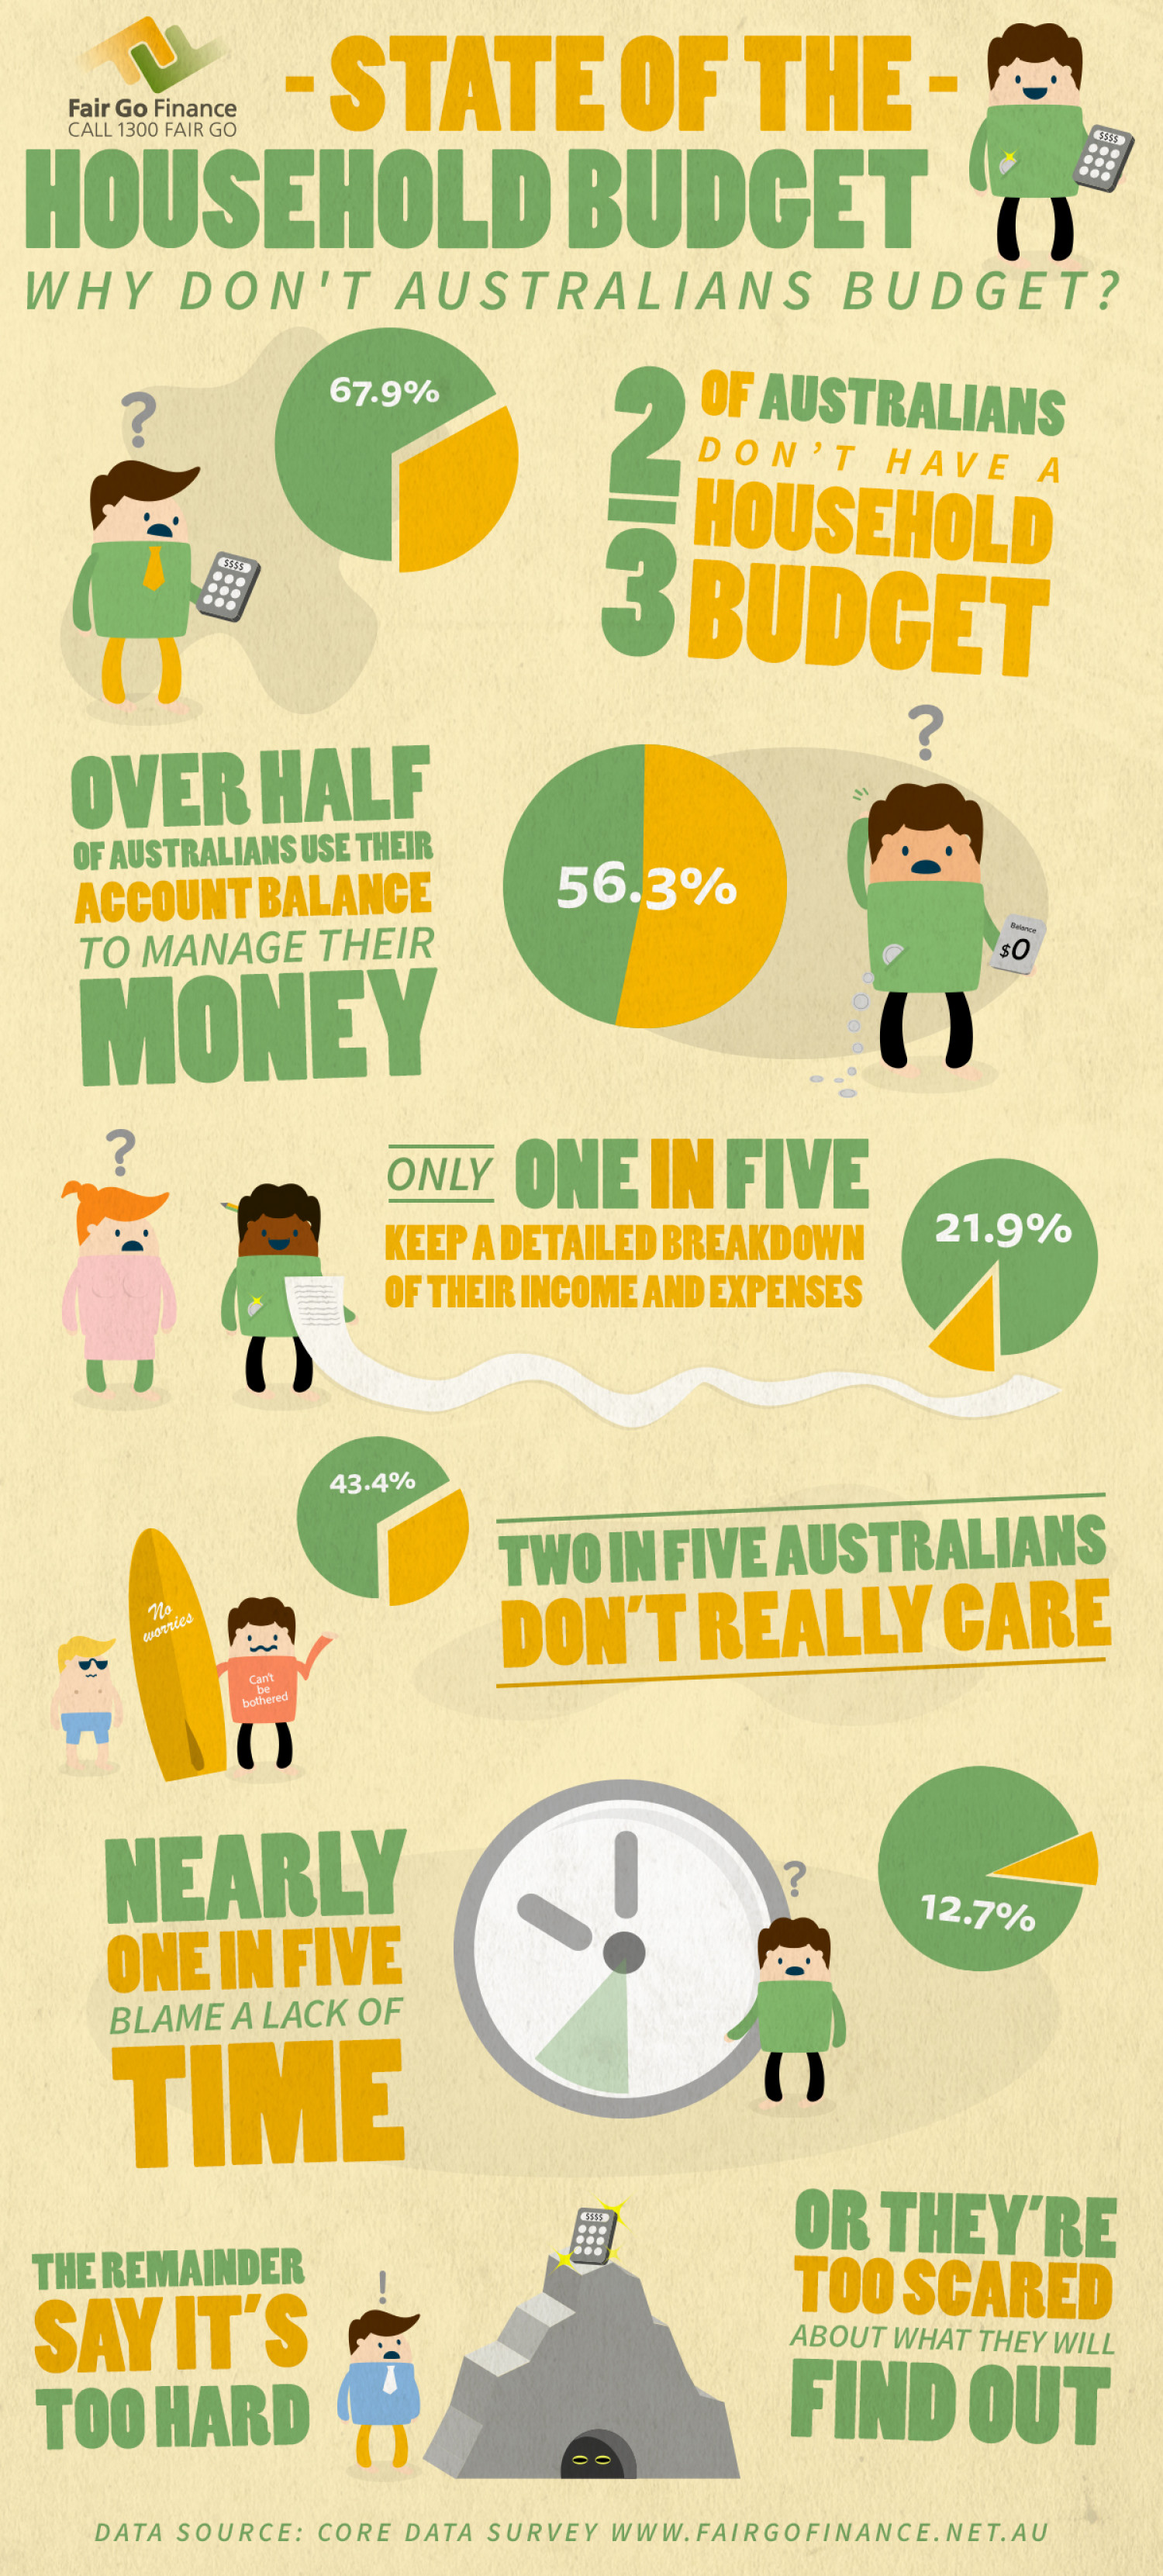 Why Don't Australians Budget? Infographic